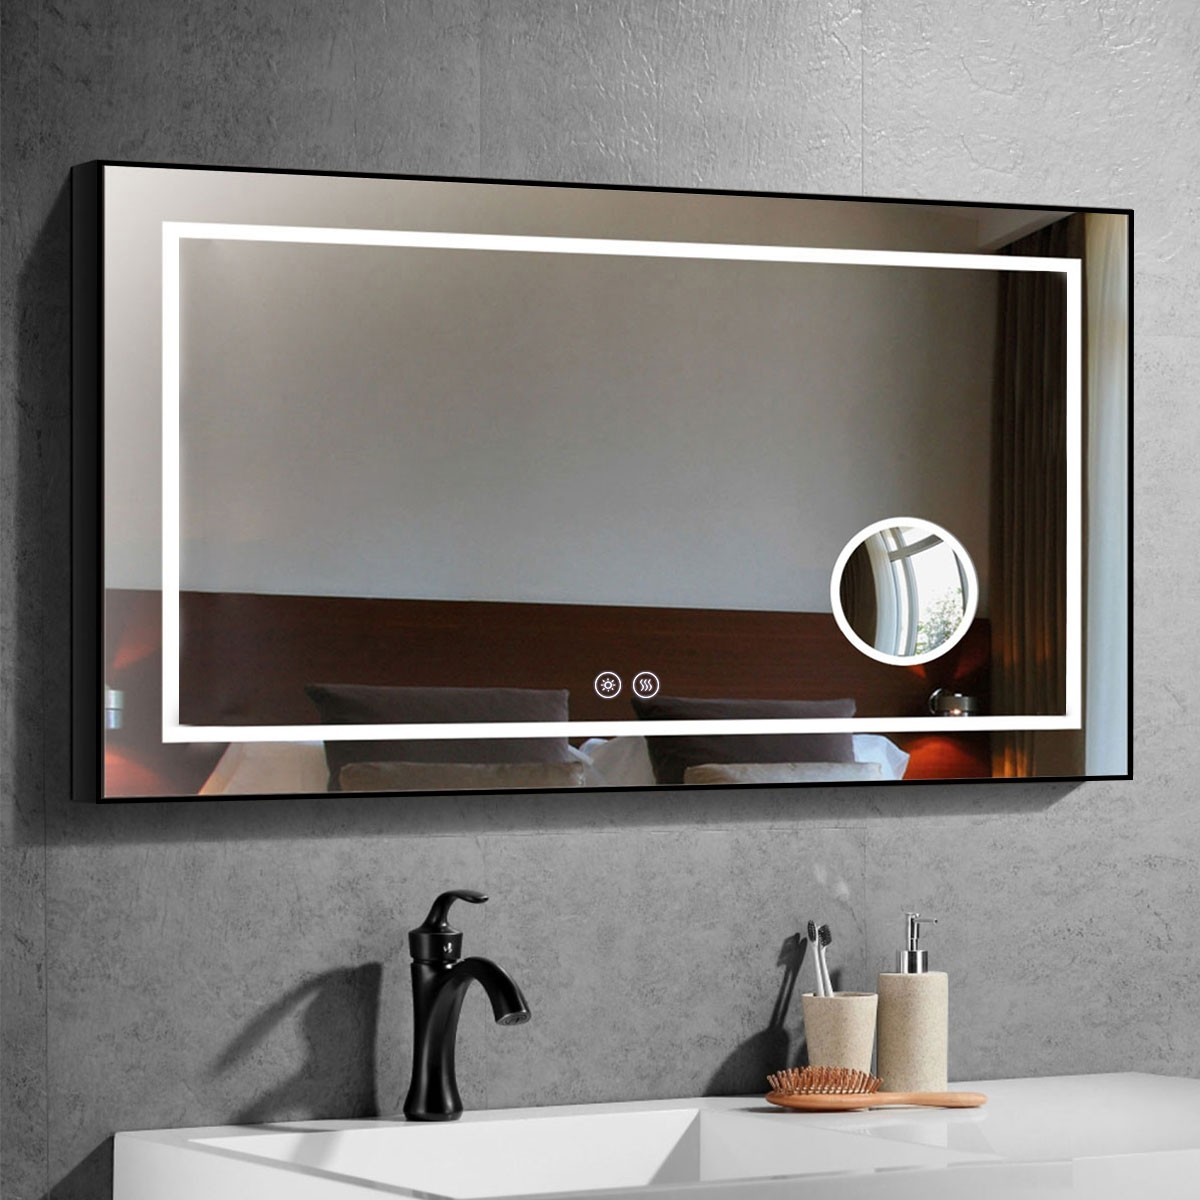 DECORAPORT 48 x 28 Inch LED Bathroom Mirror/Dress Mirror with Touch Button, Magnifier, Anti Fog, Dimmable, Vertical & Horizontal Mount (D622-4828C)